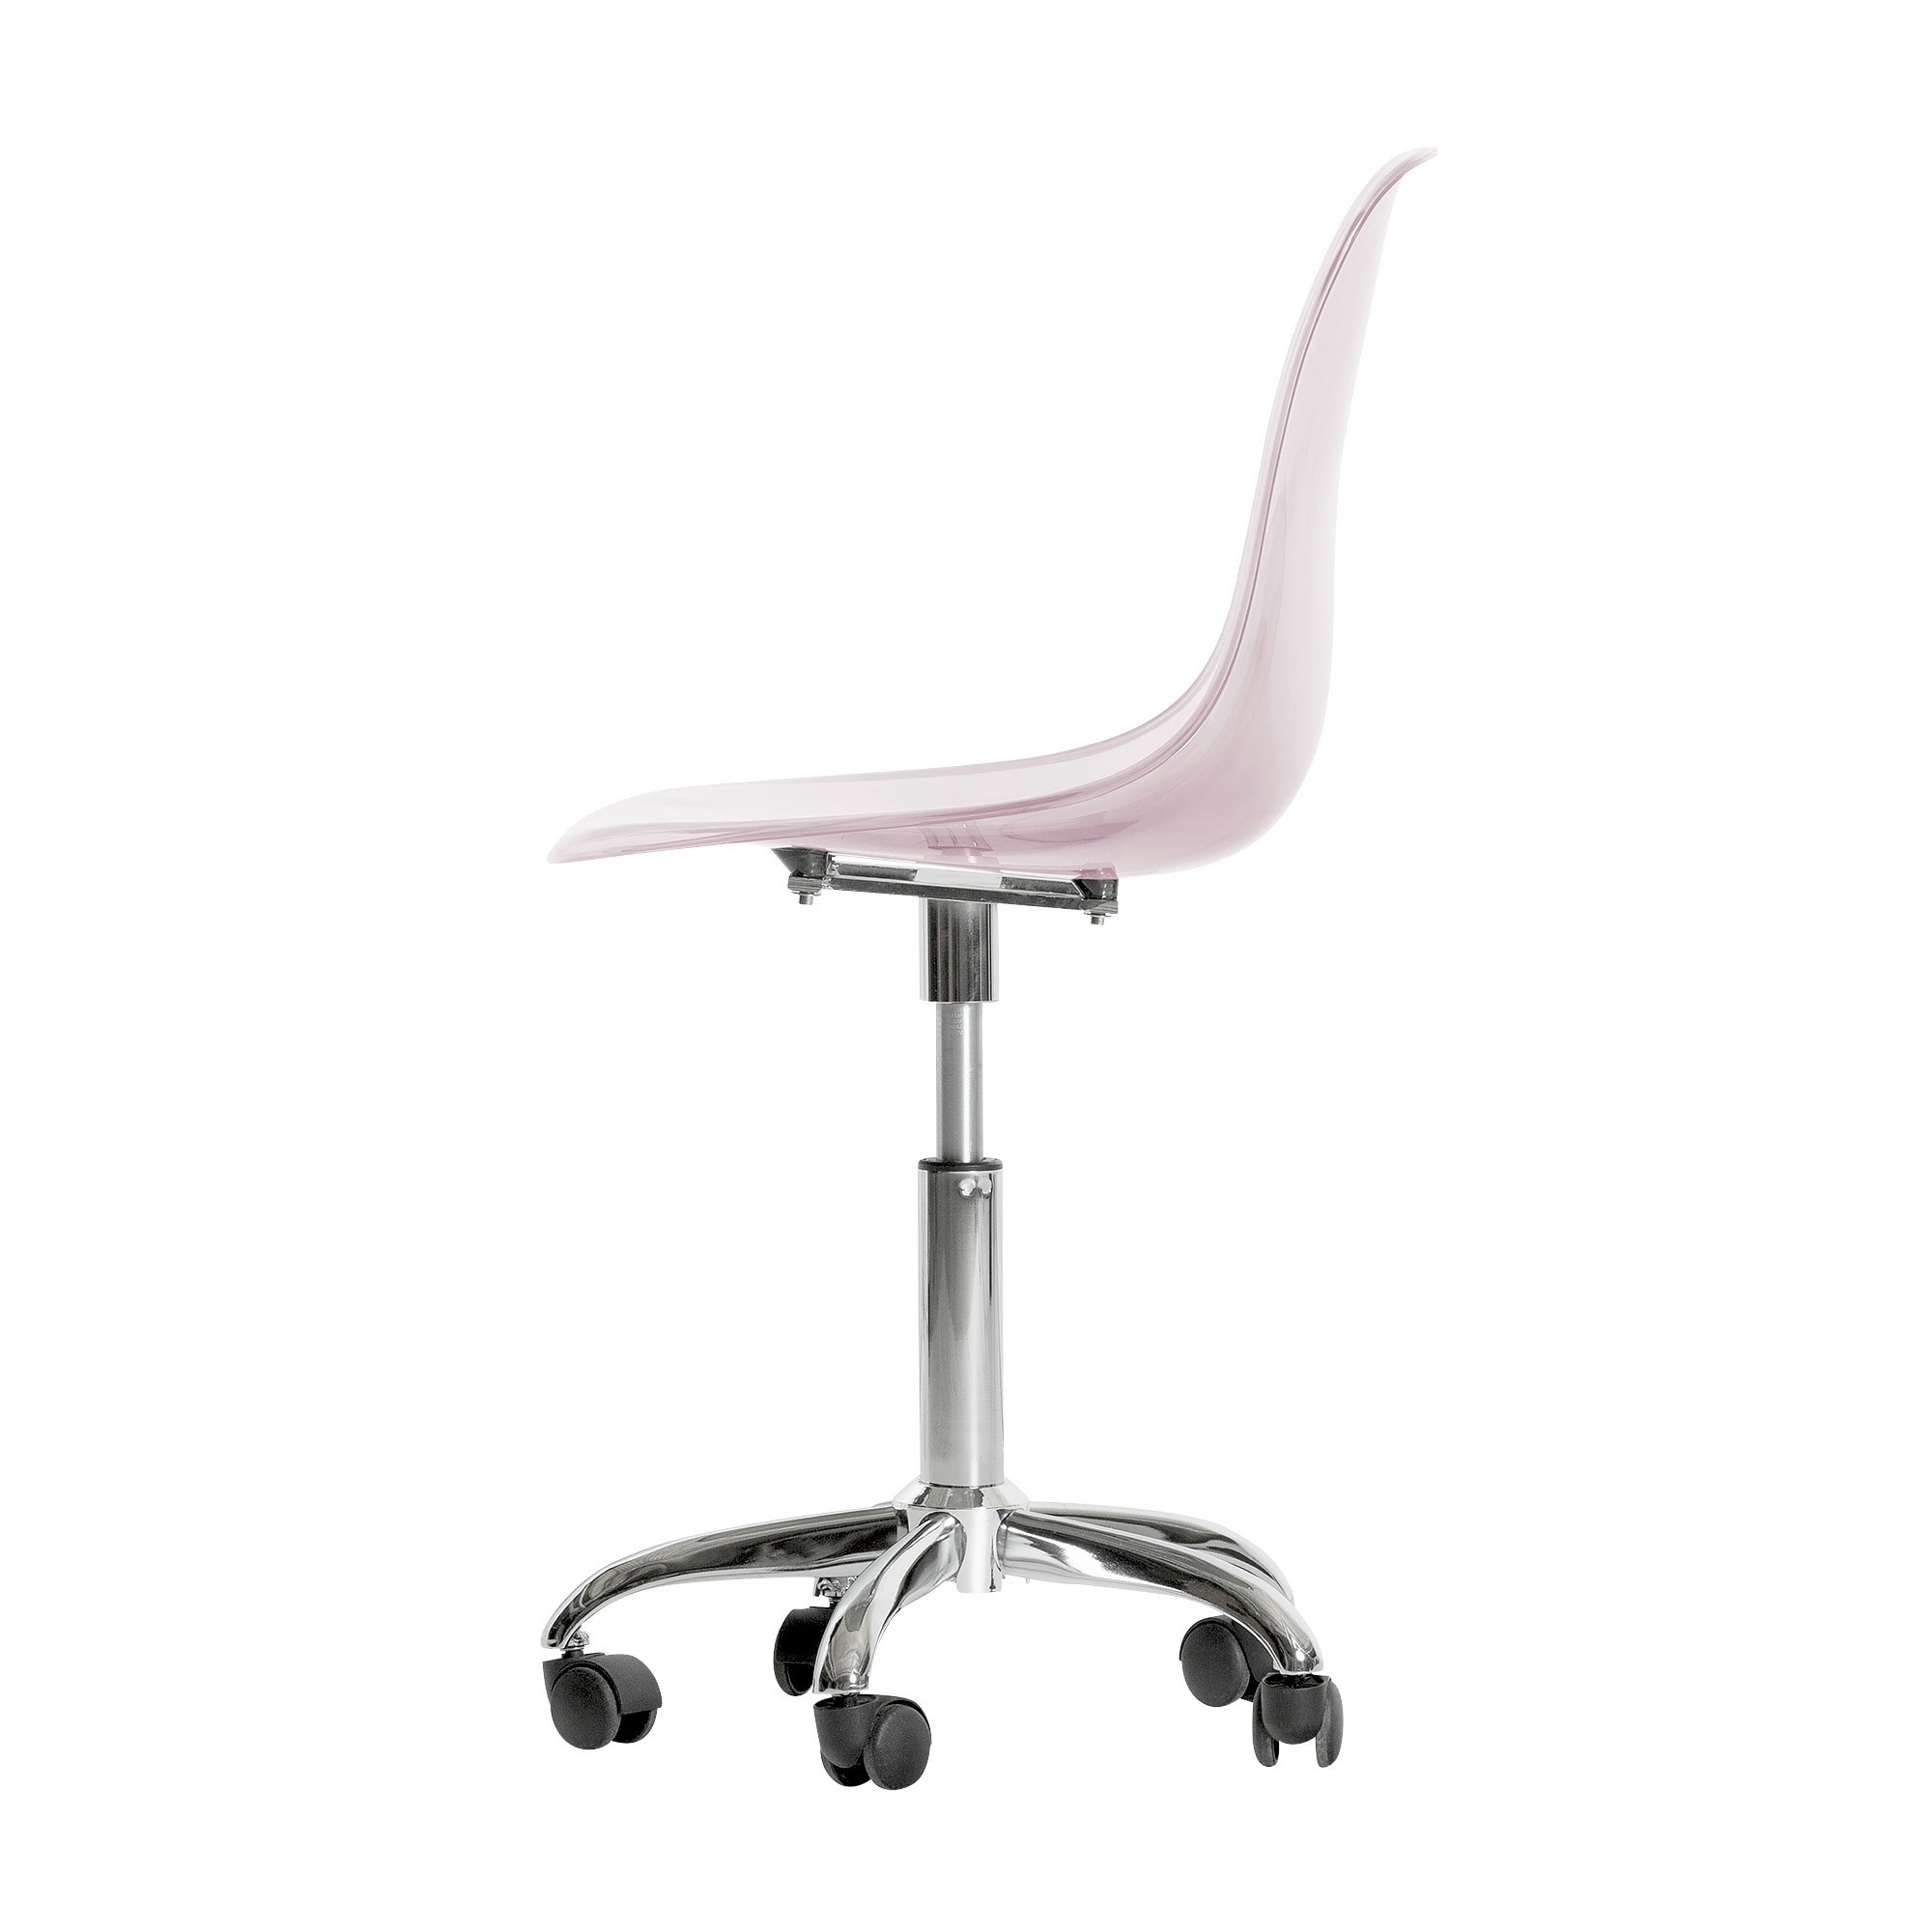 South S Furniture Clear Acrylic Wheeled Office Chair On Free Shipping Today 11468395